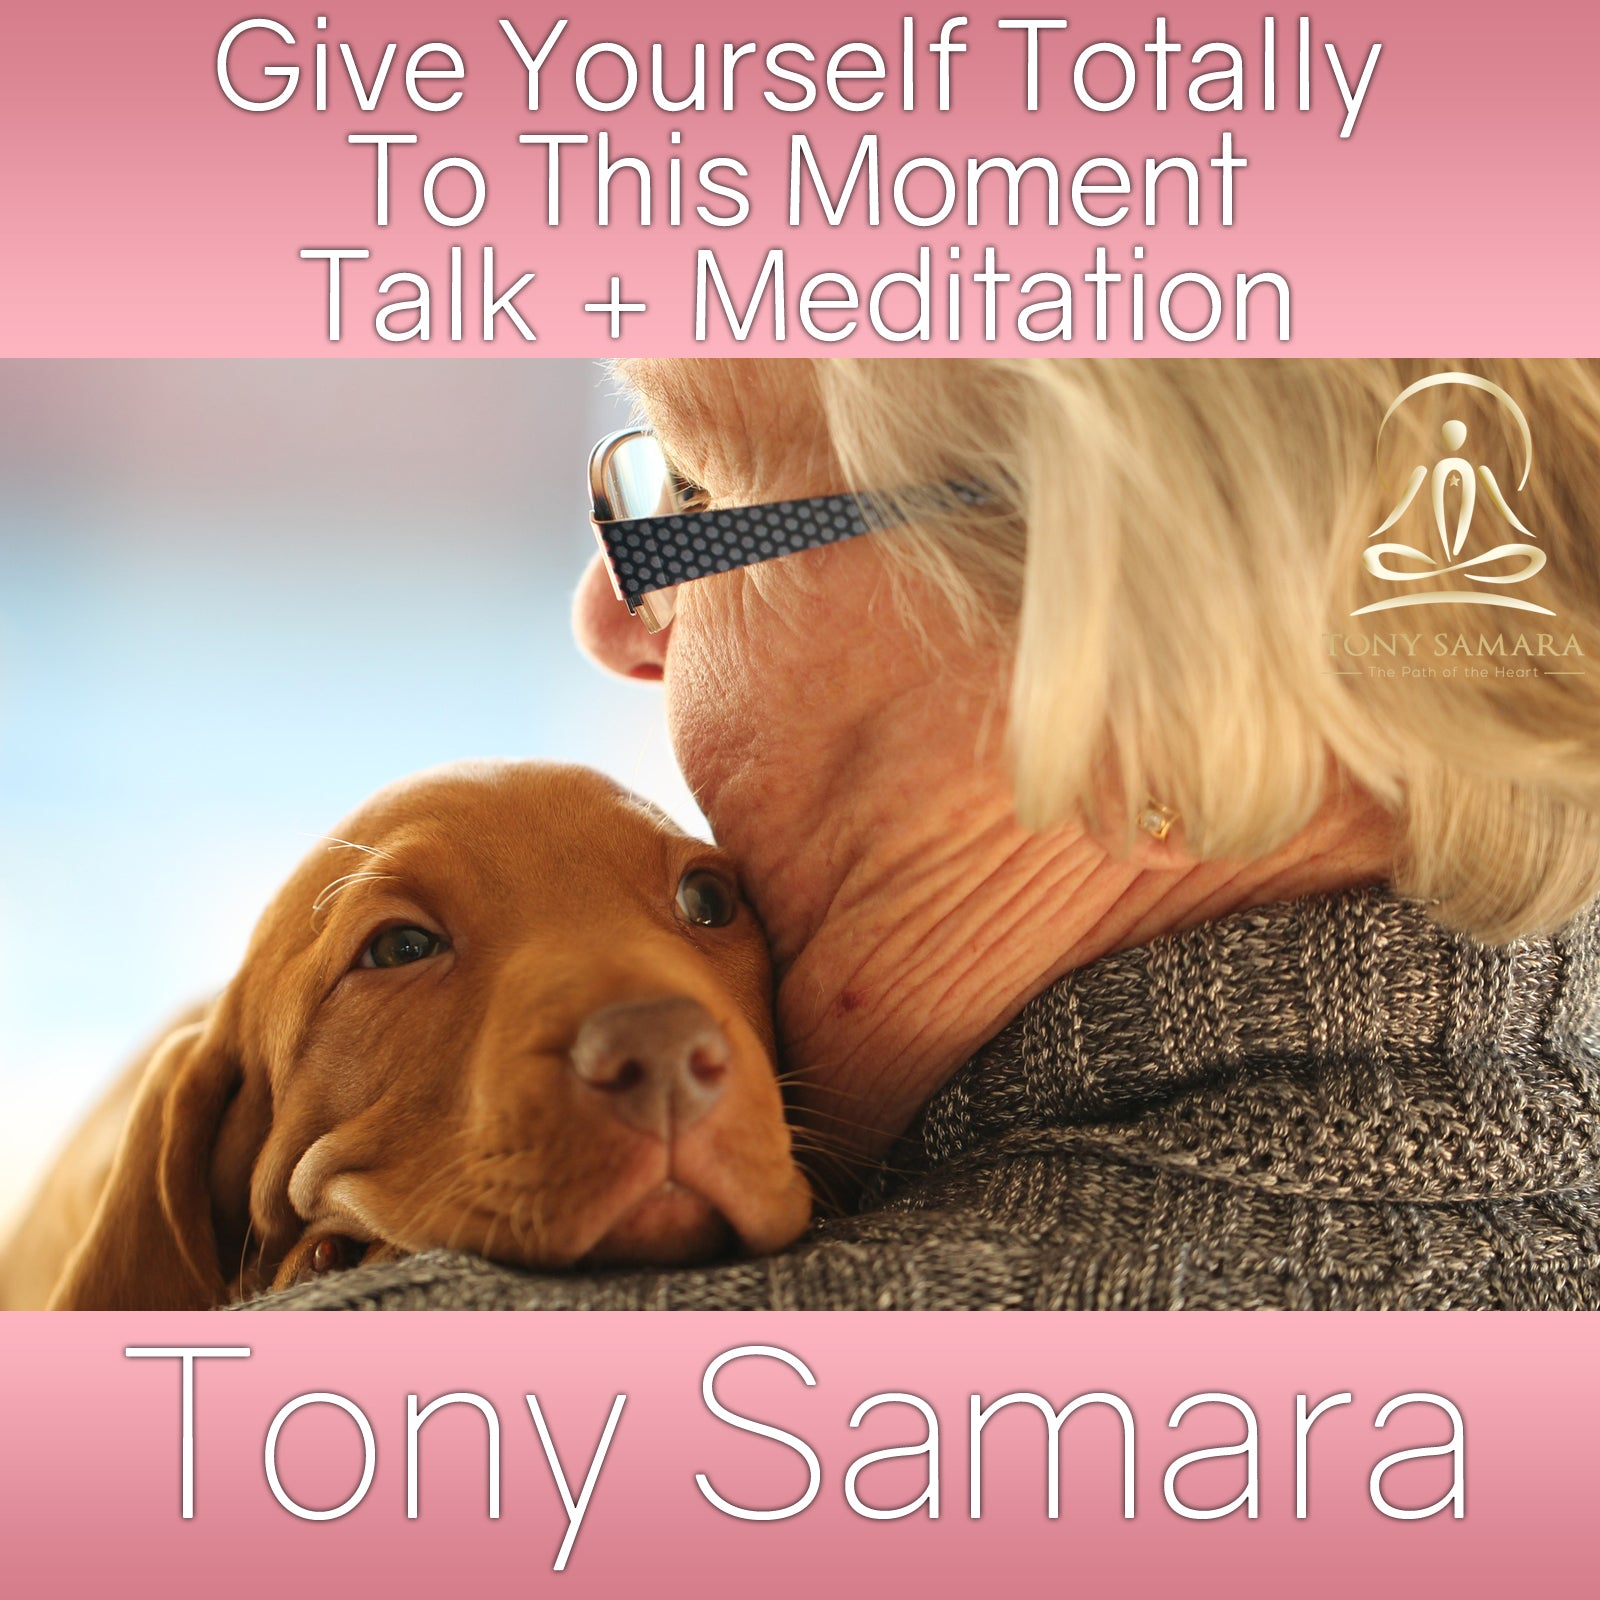 Give Yourself Totally To This Moment Talk + Meditation (MP3 Audio Download) - Tony Samara Meditation